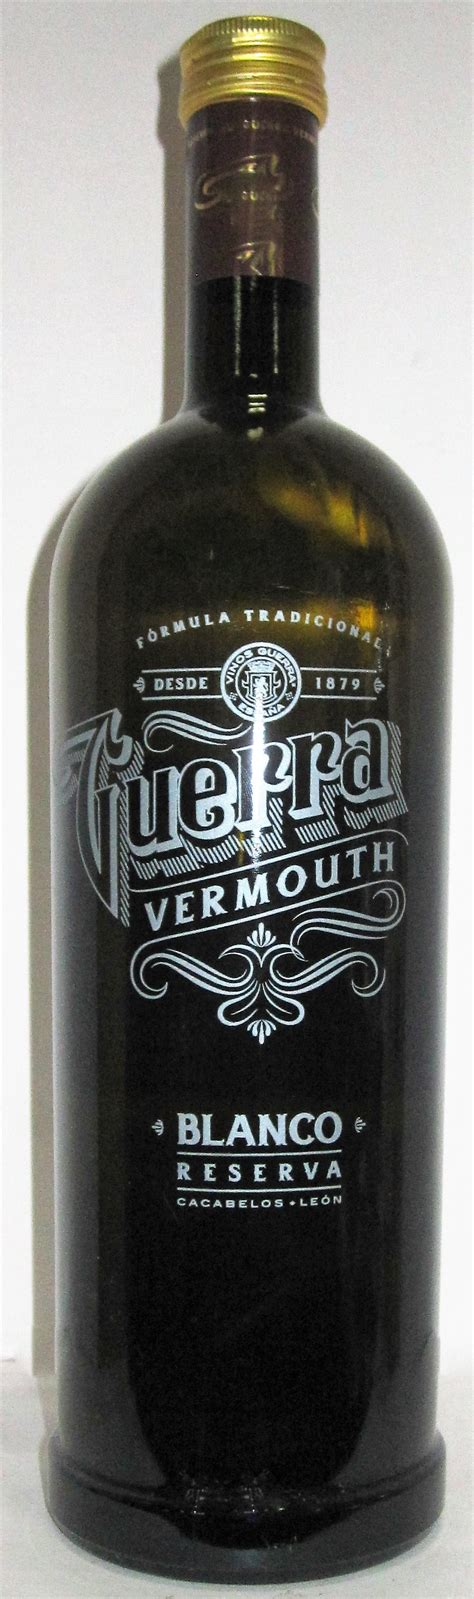 dry vermouth color guerra quot formula tradicional quot reserva blanco vermouth the